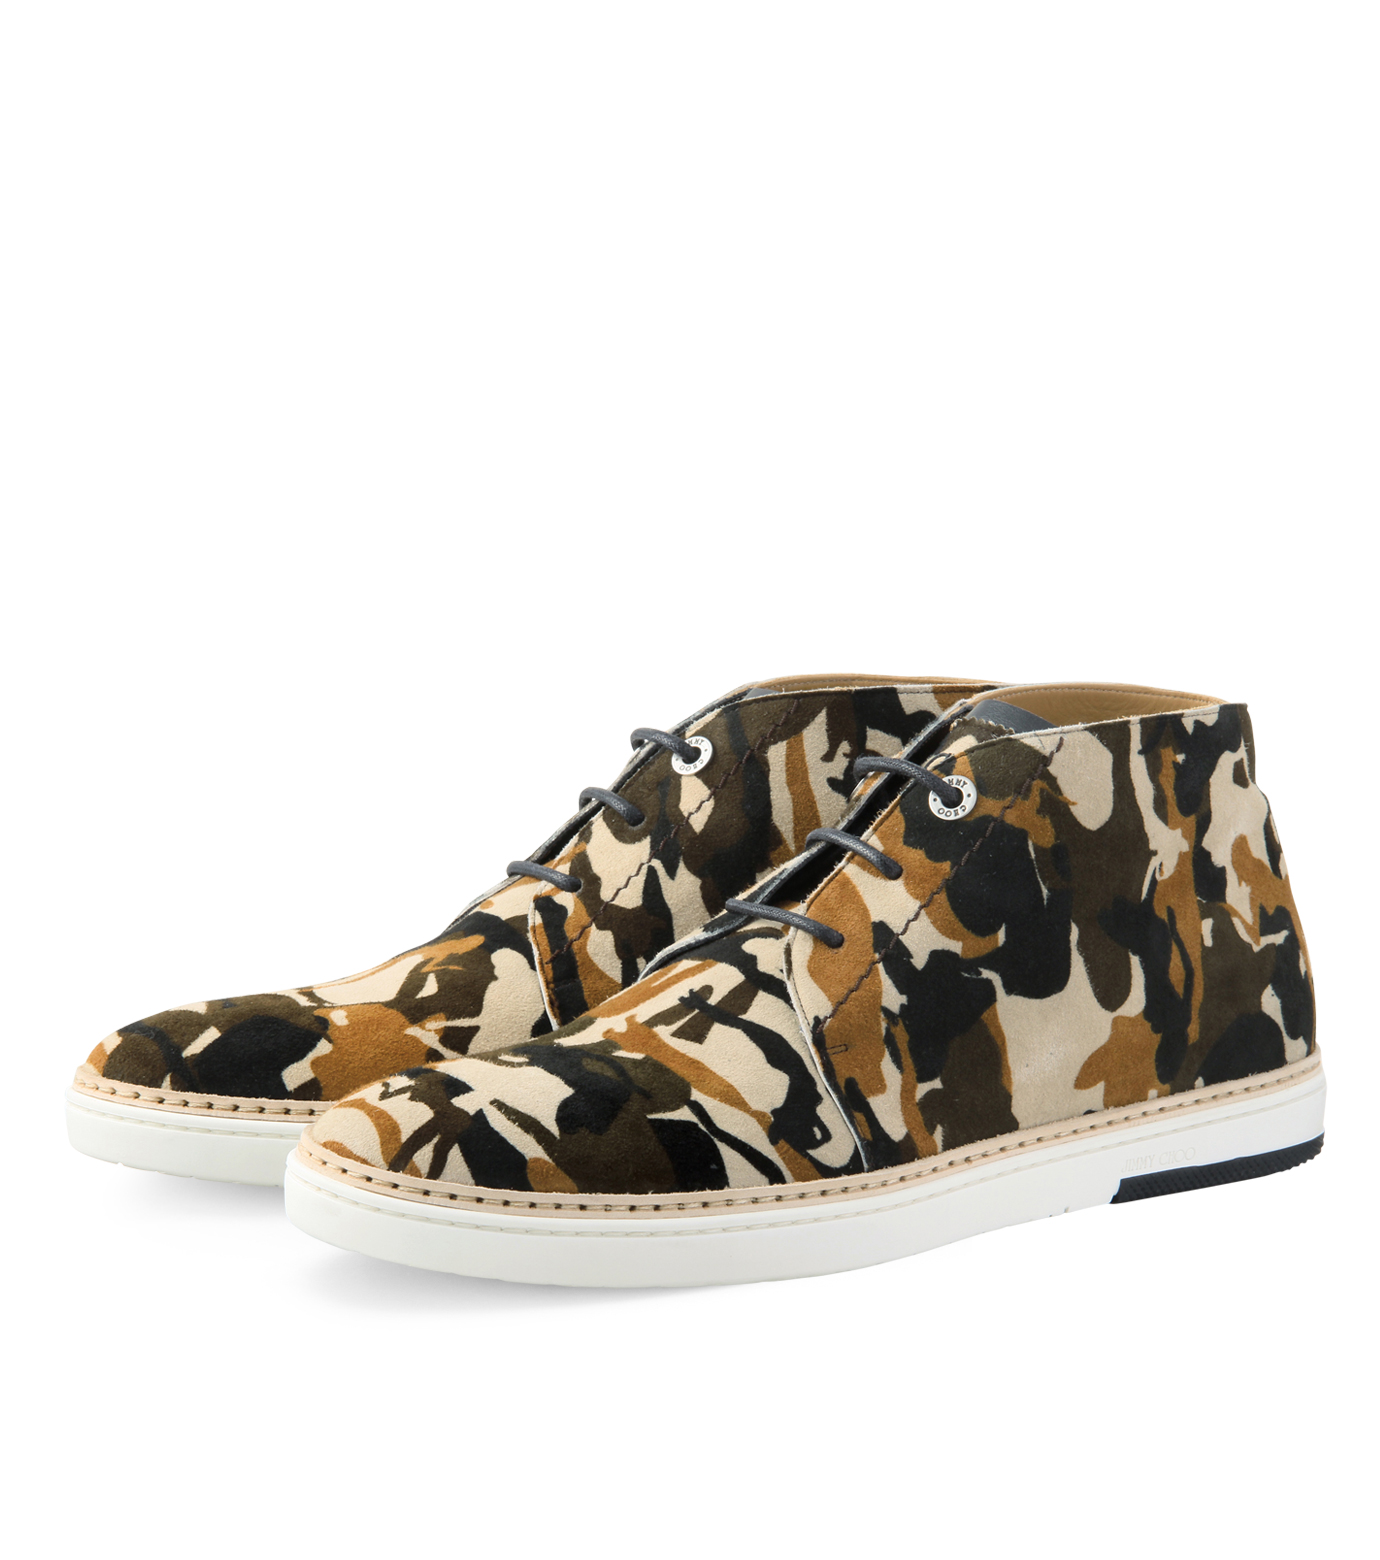 Jimmy Choo(ジミーチュウ)のCamo print desert boots-LIGHT BROWN-DRAKE-CPD-41 拡大詳細画像4